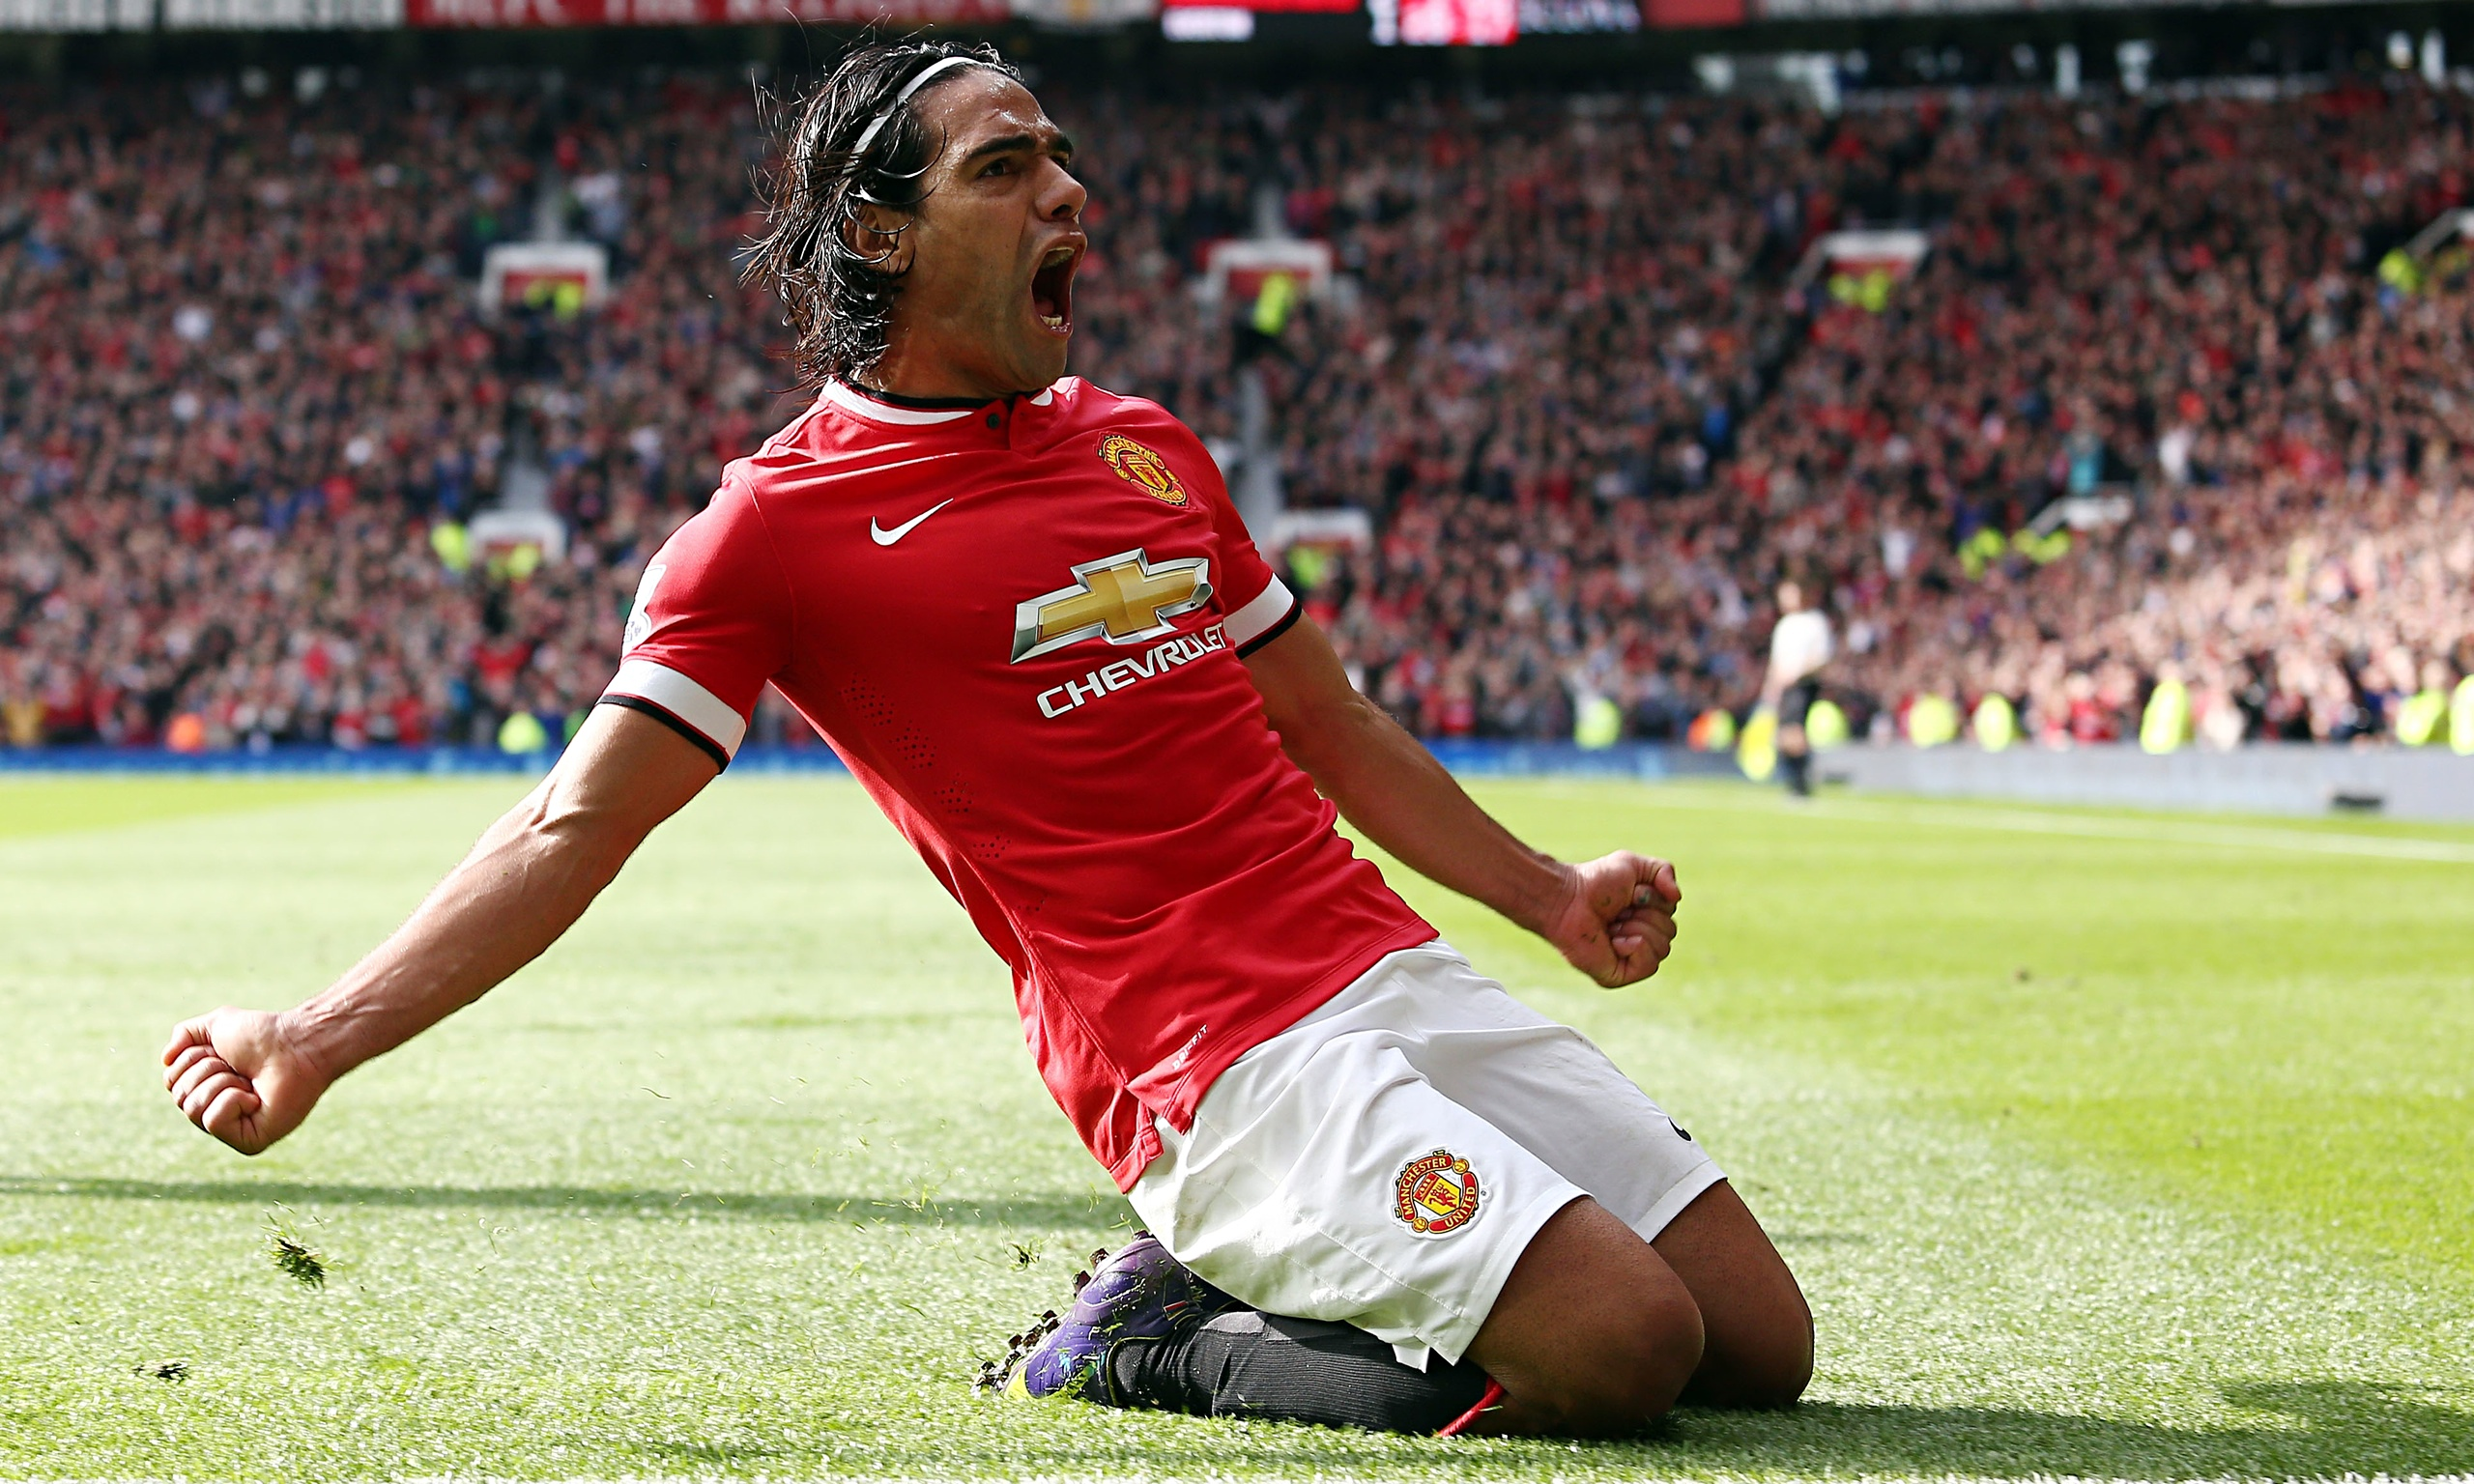 Radamel Falcao wants to extend Manchester United stay ...